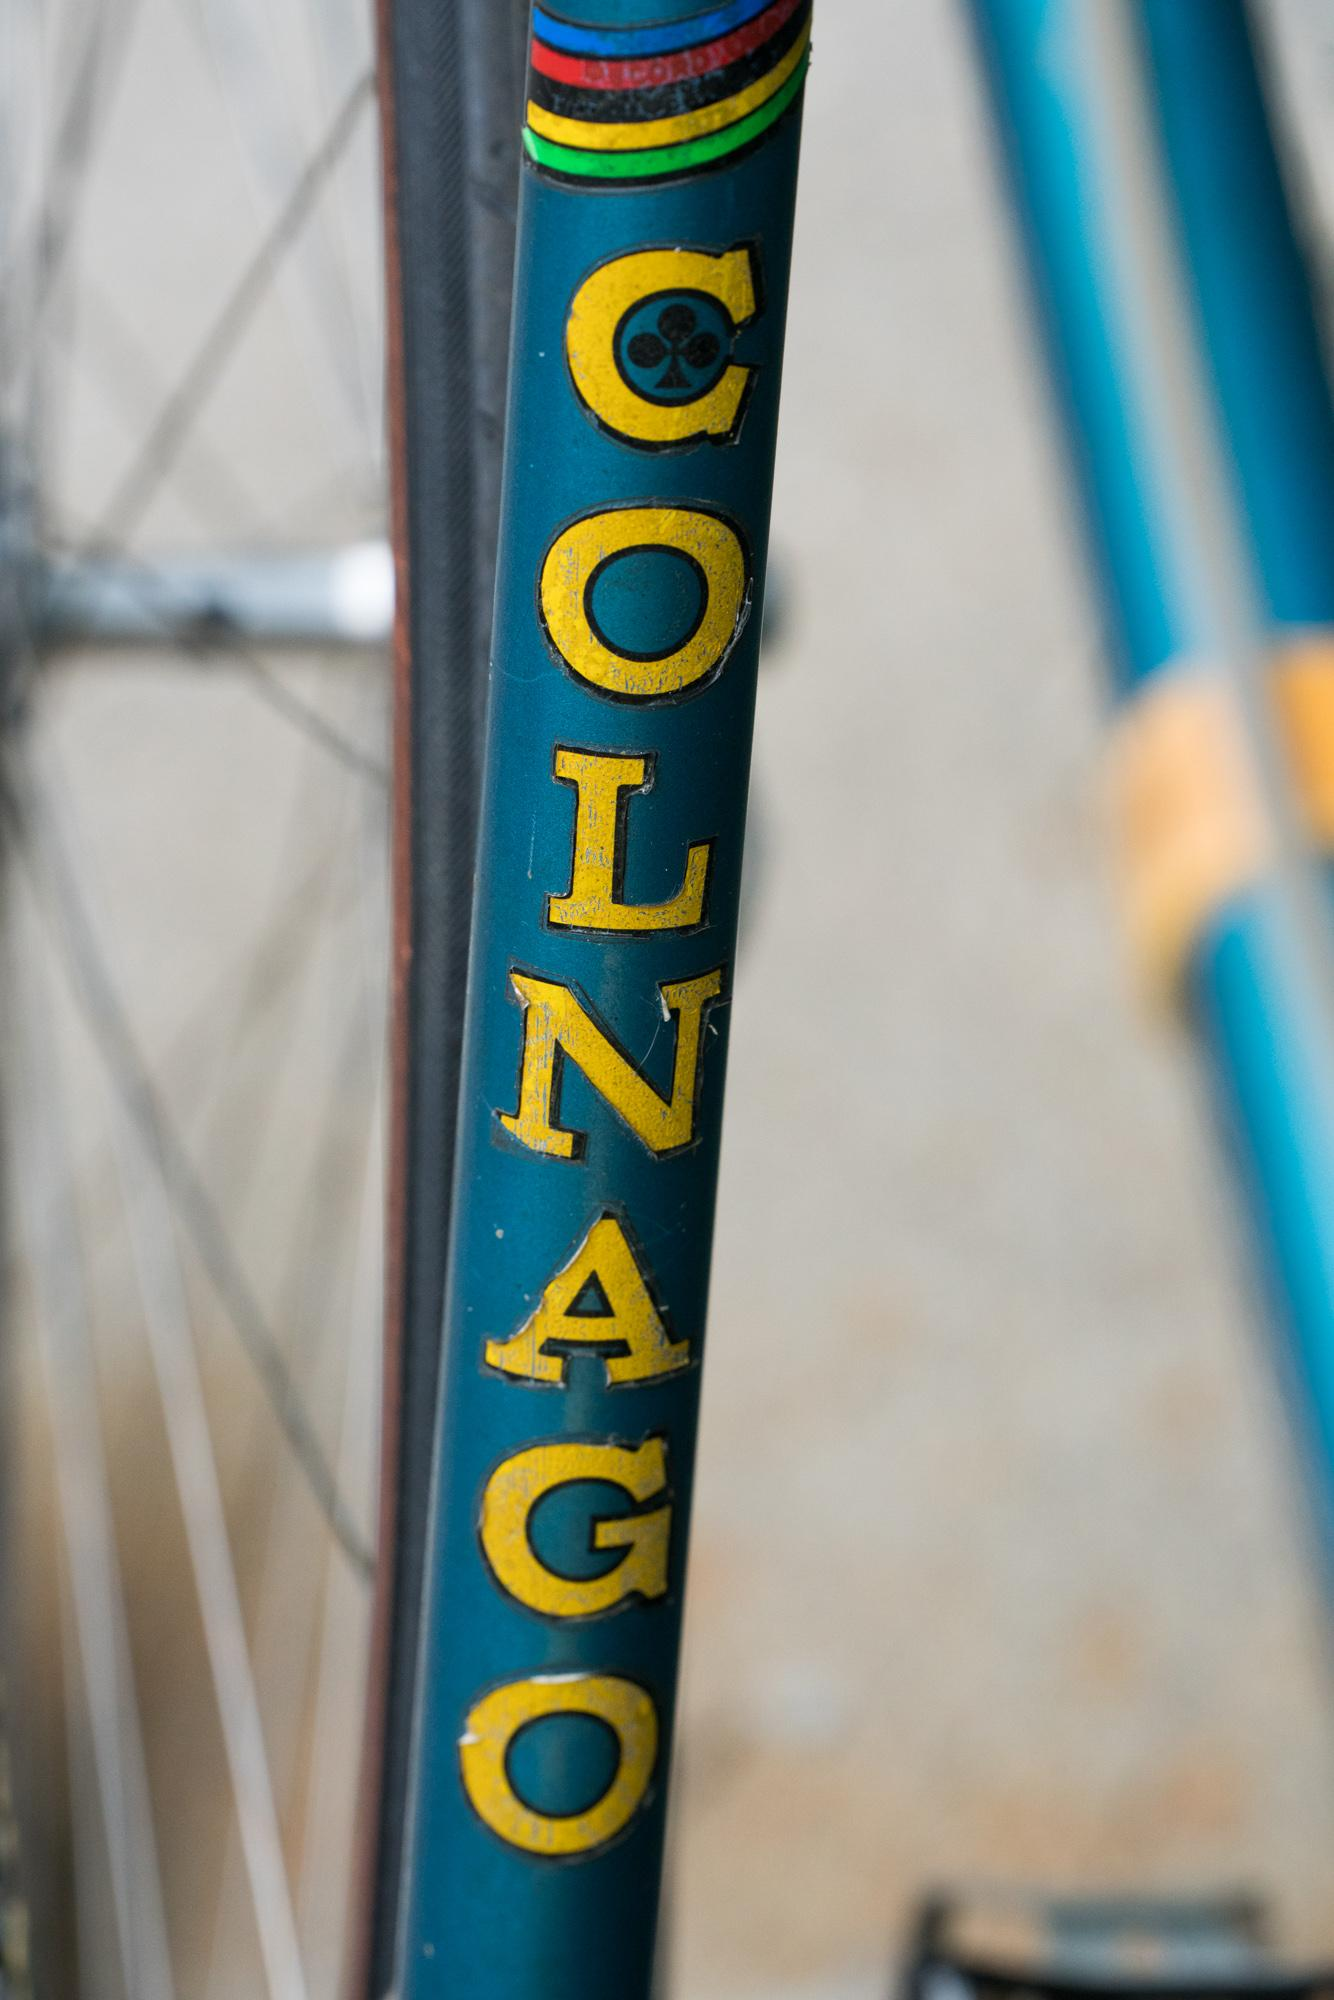 Johns Cool Colnago Coolnago (19 of 27)